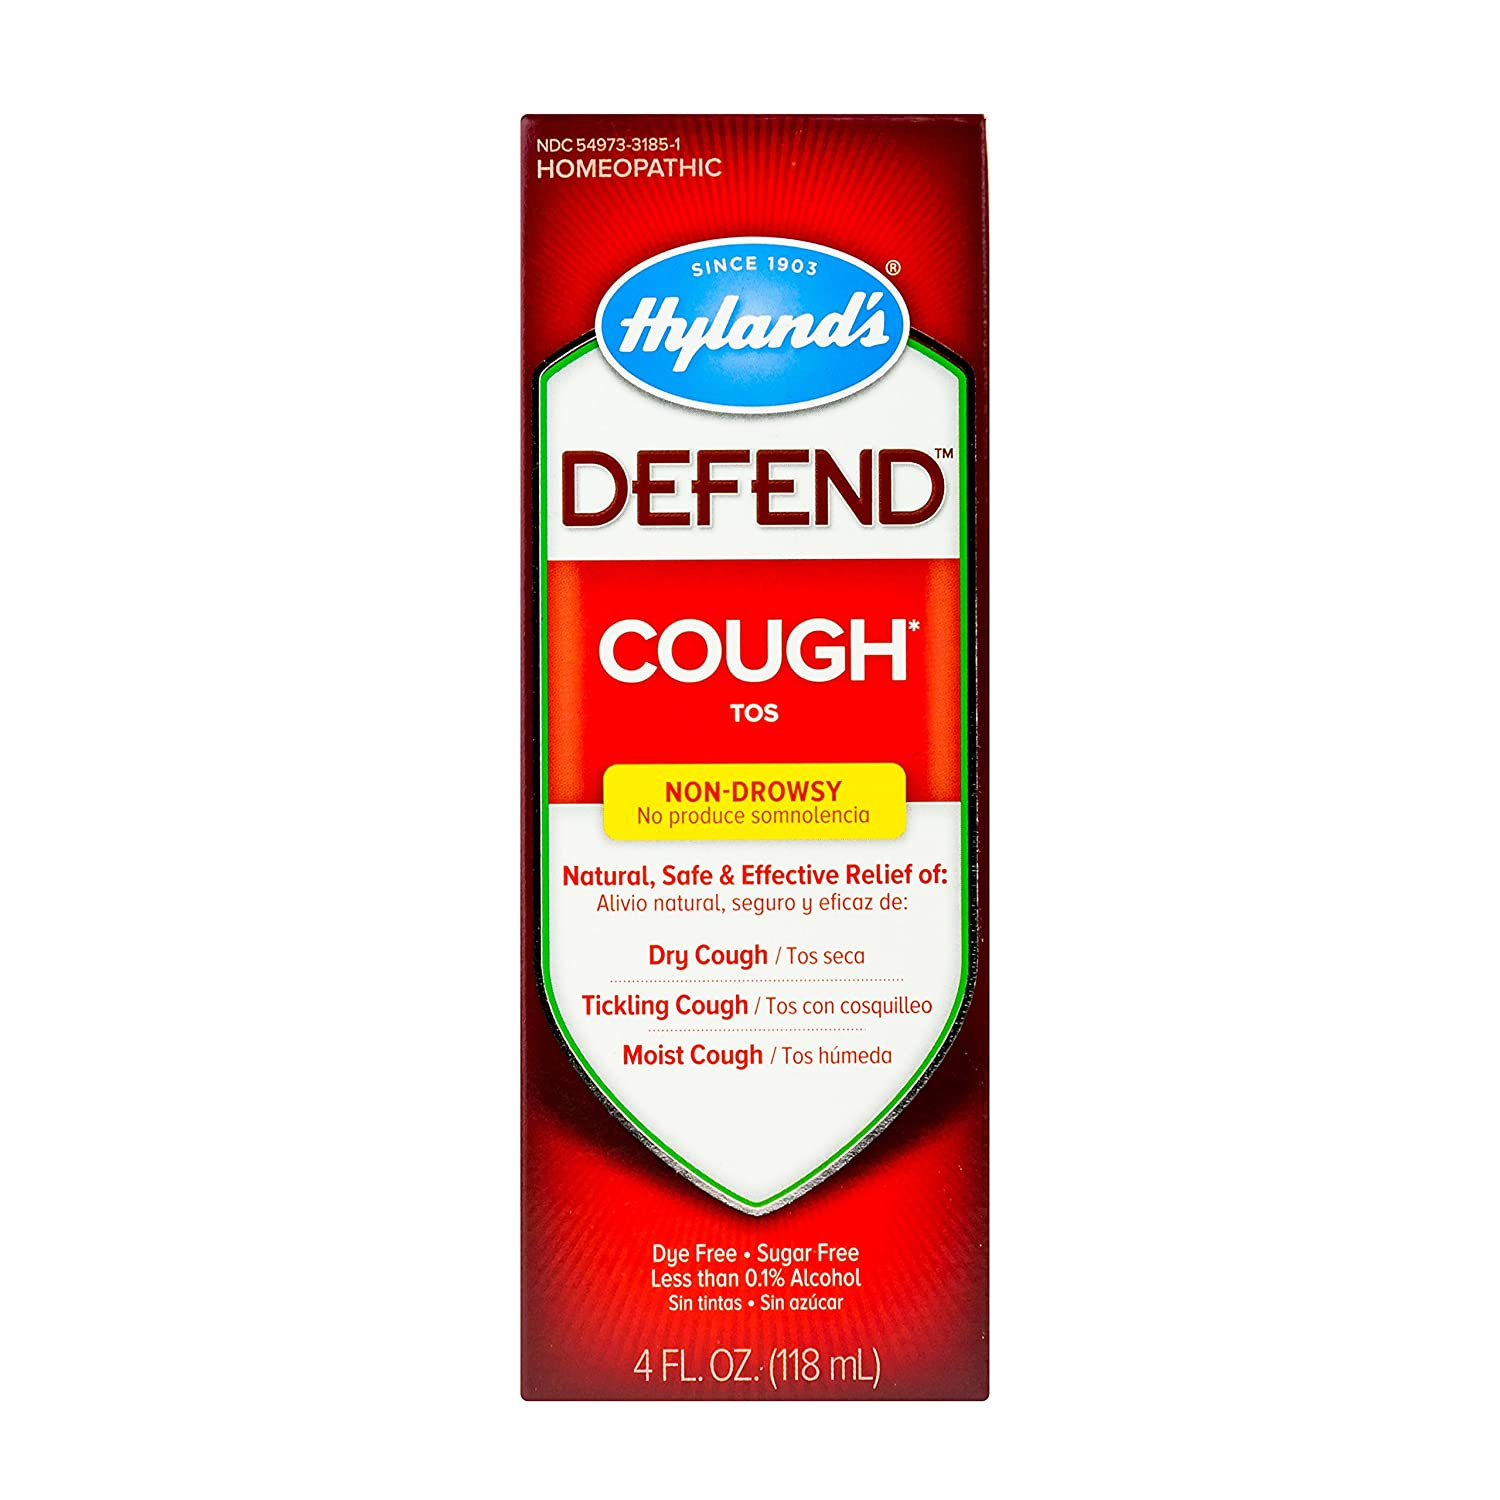 Amazon.com: Cough Syrup by Hyland's Defend, Dry Cough Medicine, Mucus and Sore  Throat Relief, Non-Drowsy, Natural Cough Suppressant for Adults, 4 Fl Oz:  Beauty